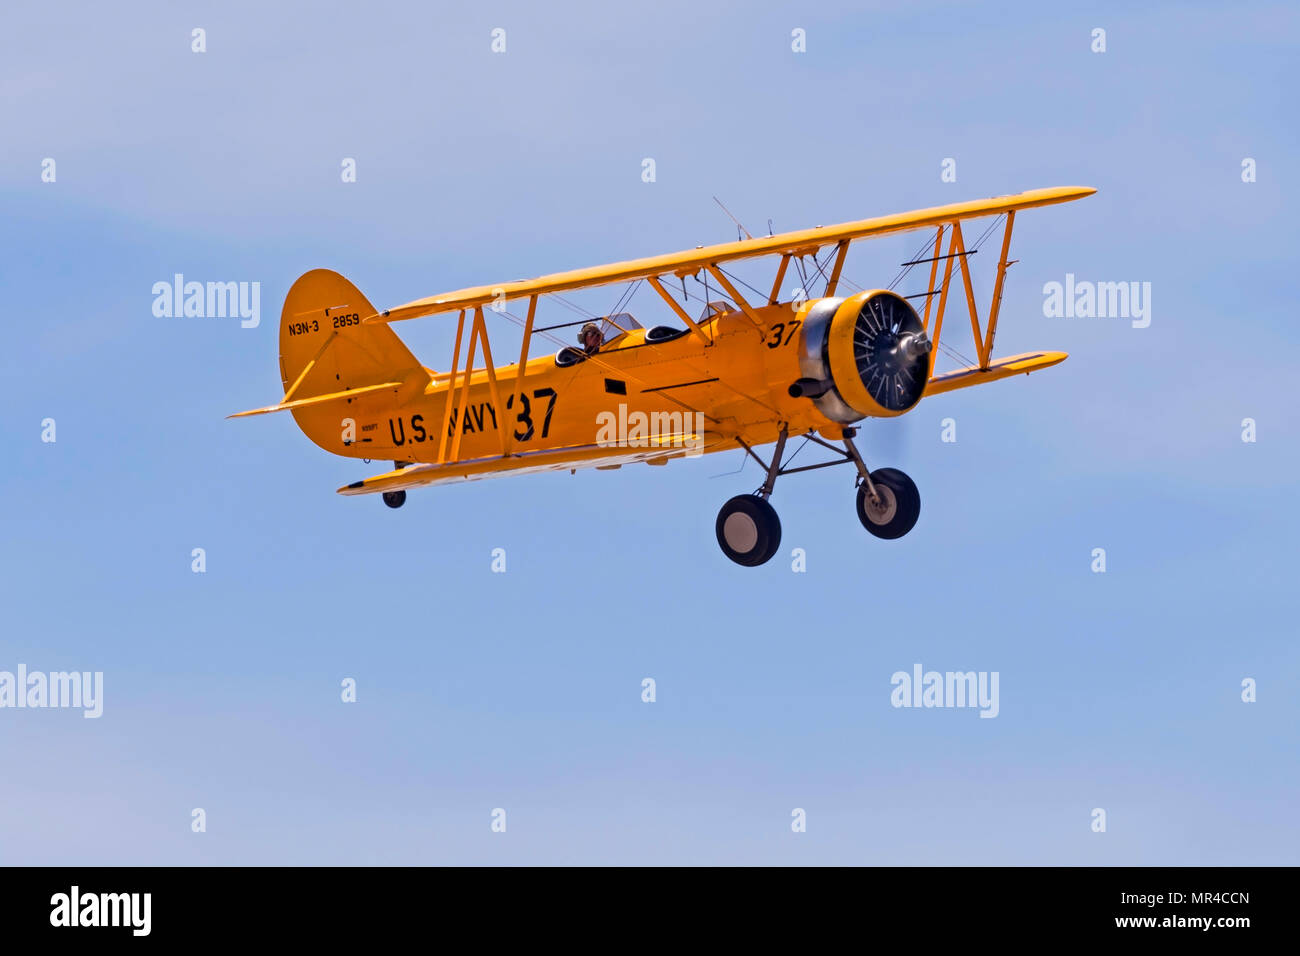 Airplane vintage WWII bi-plane at the airshow - Stock Image